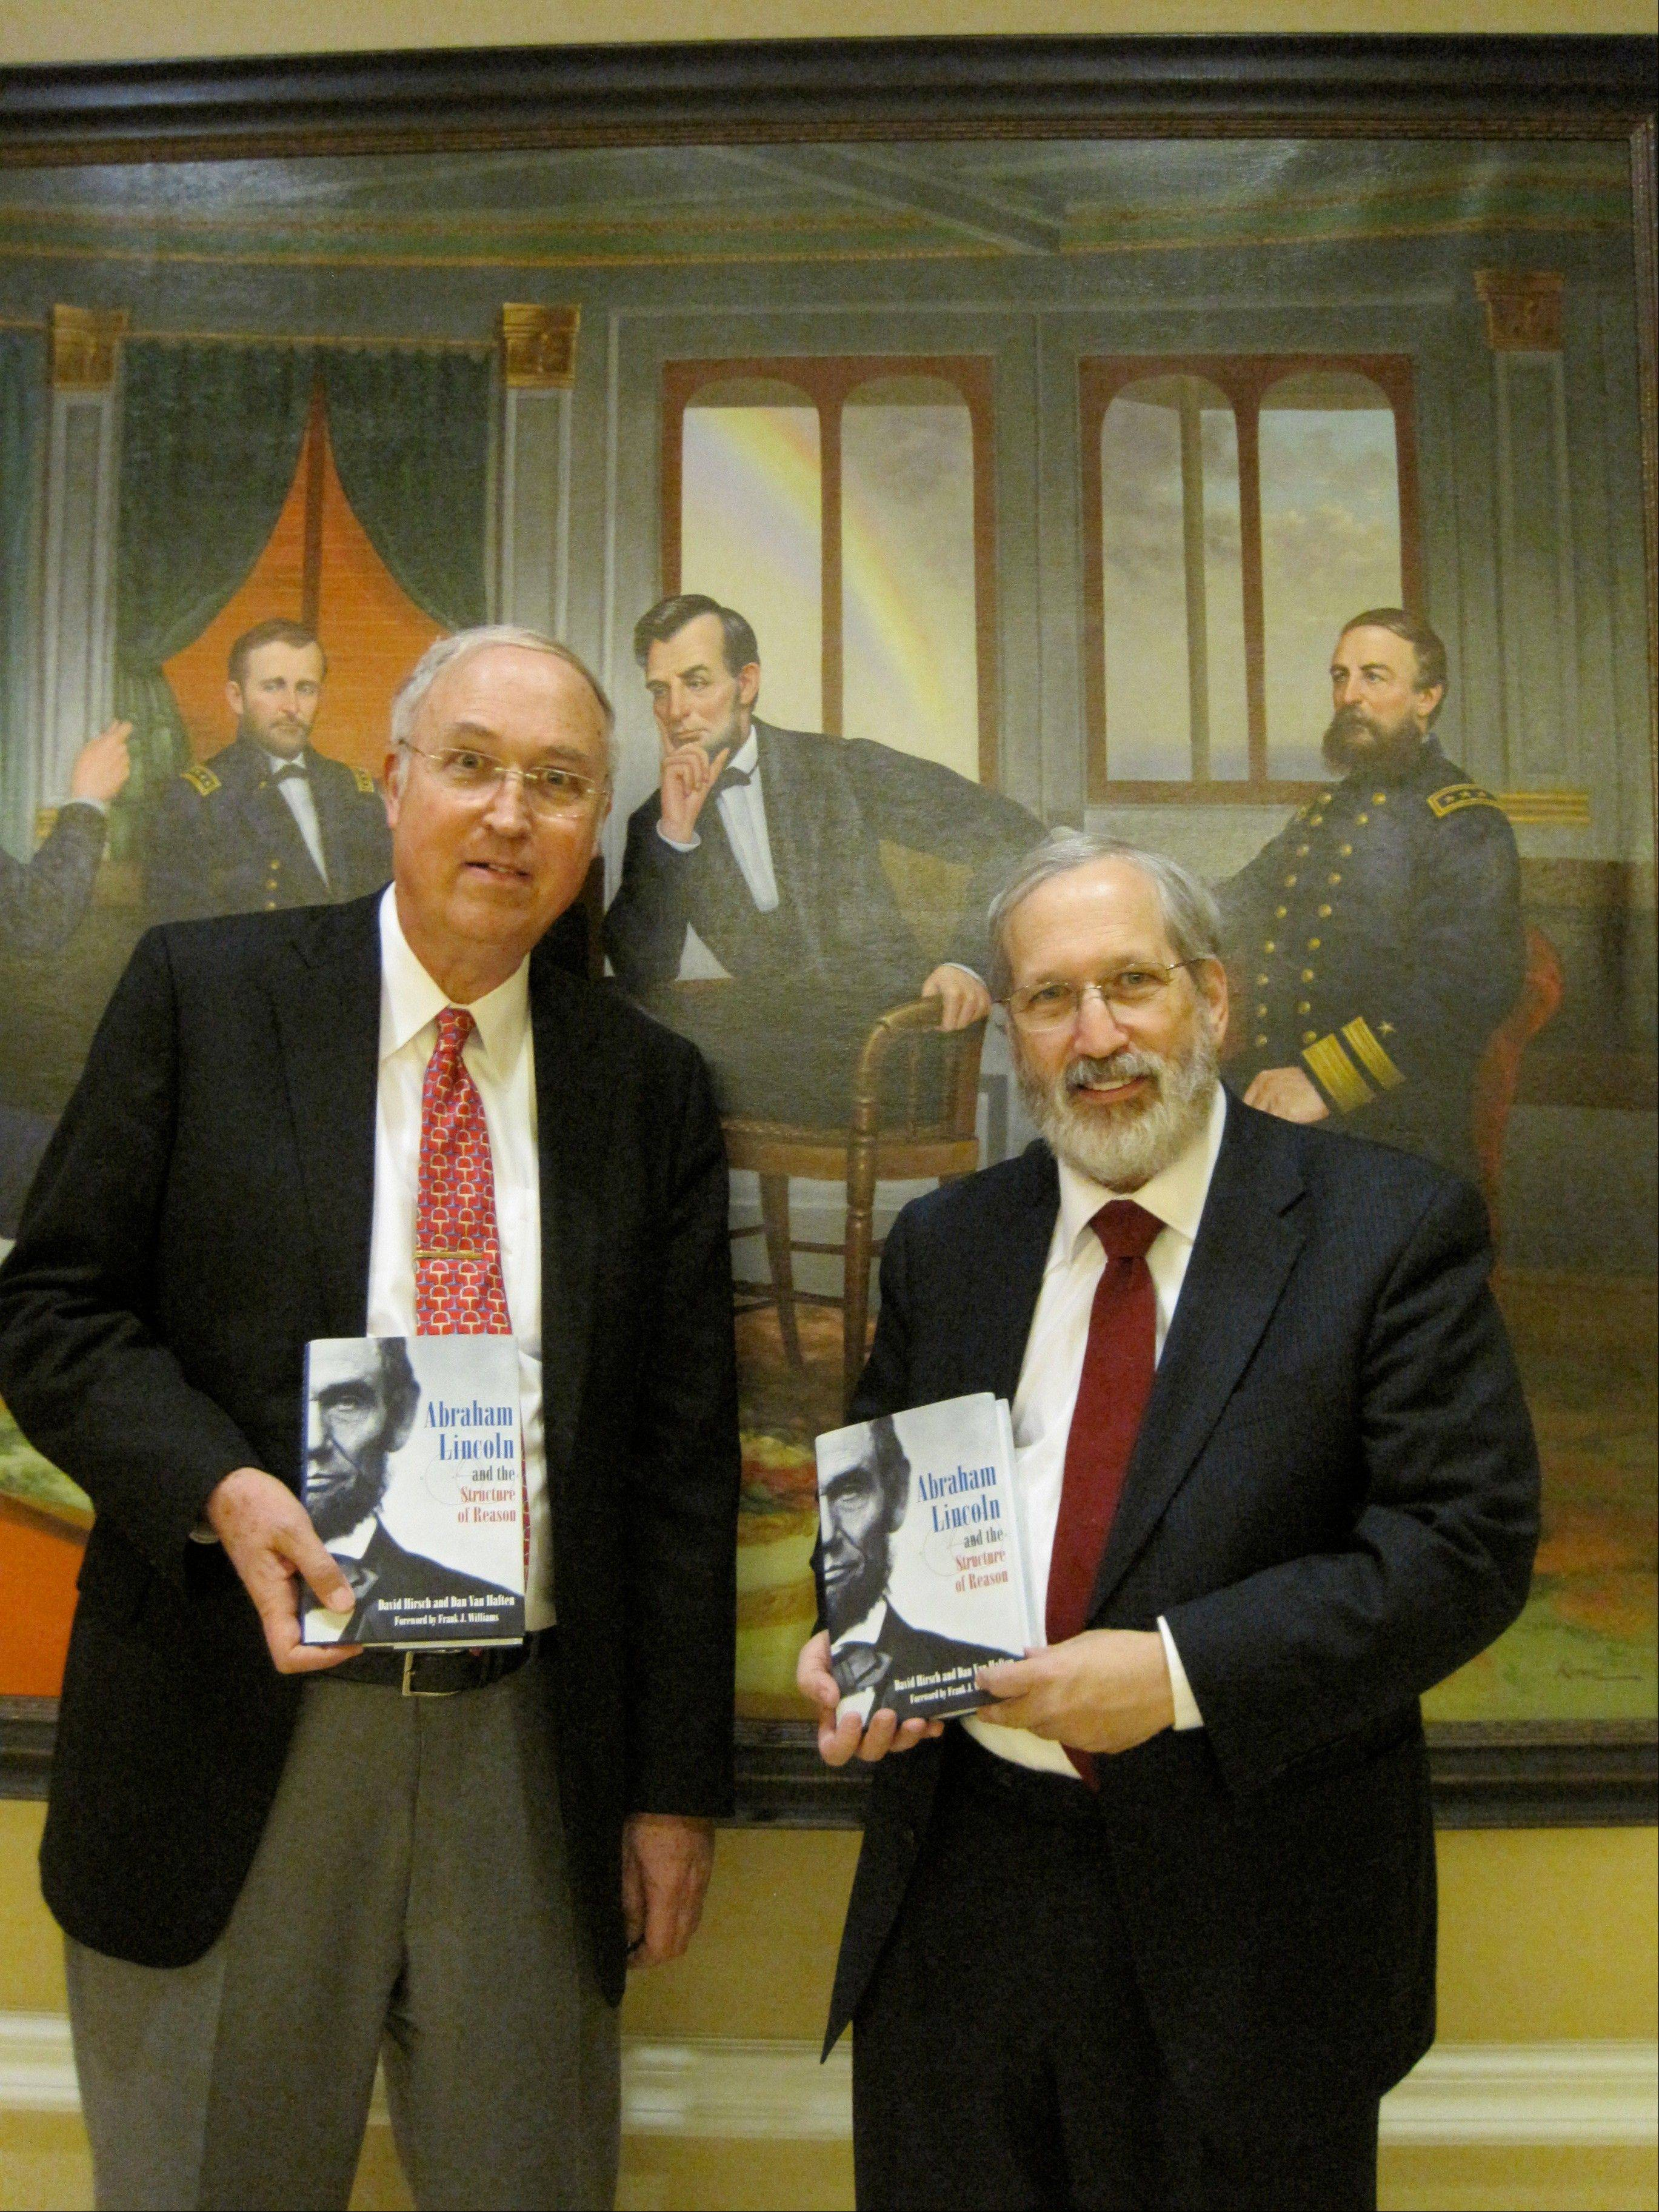 Authors Dan Van Haften, left, and David Hirsch pose with the book they wrote after studying the speeches of Abraham Lincoln. Van Haften recently discussed the book in Washington, D.C.